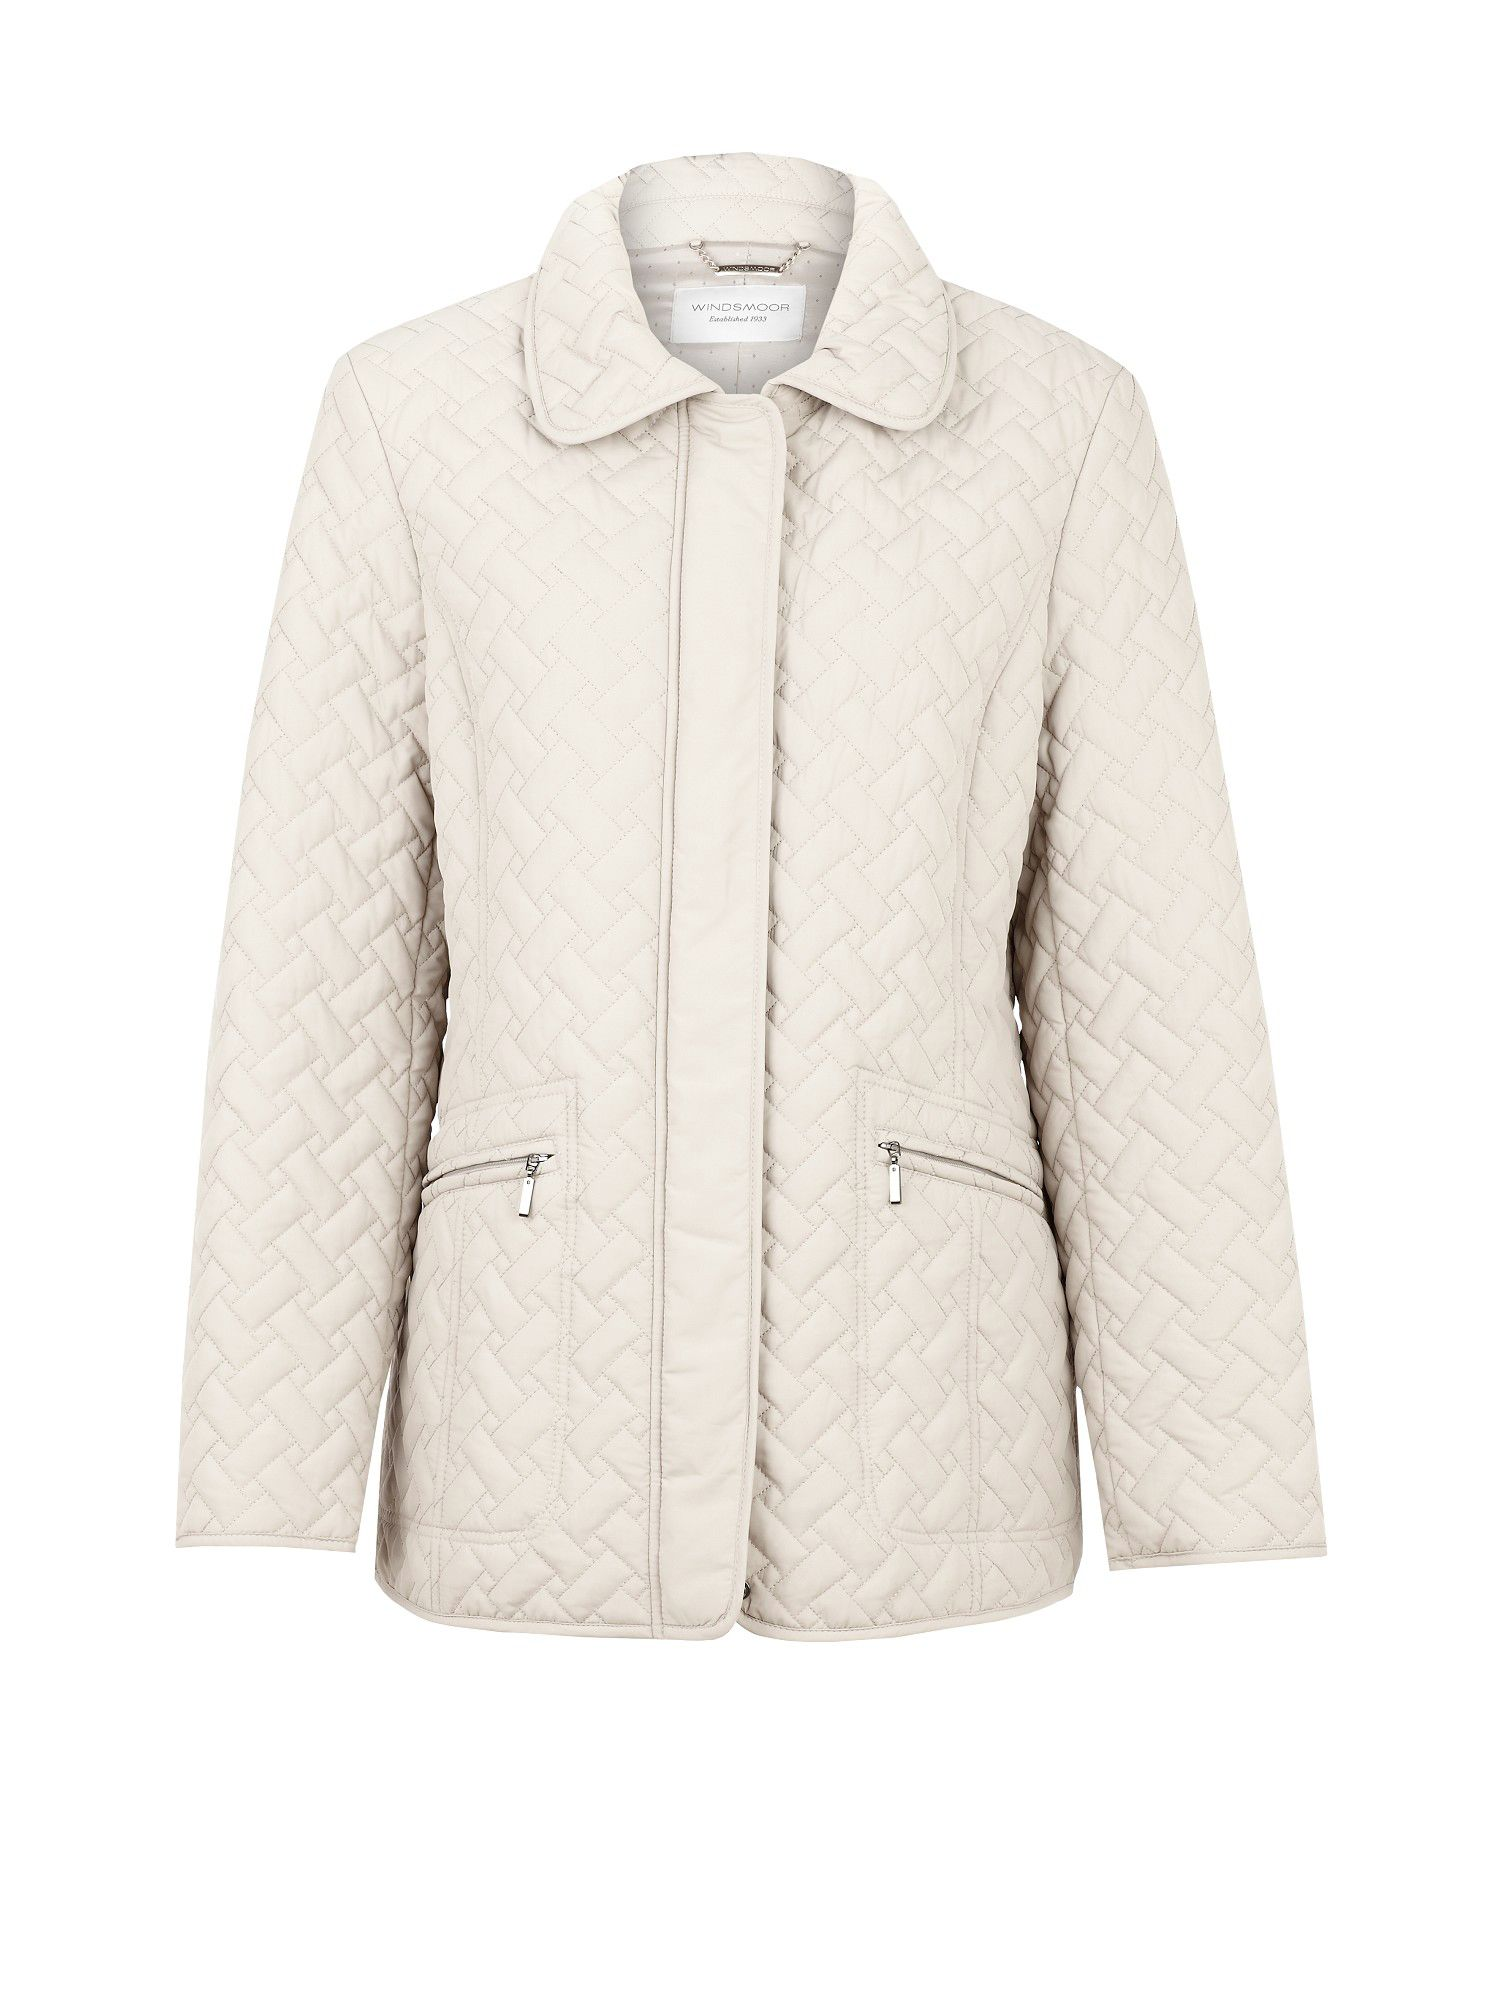 Oyster short quilted jacket